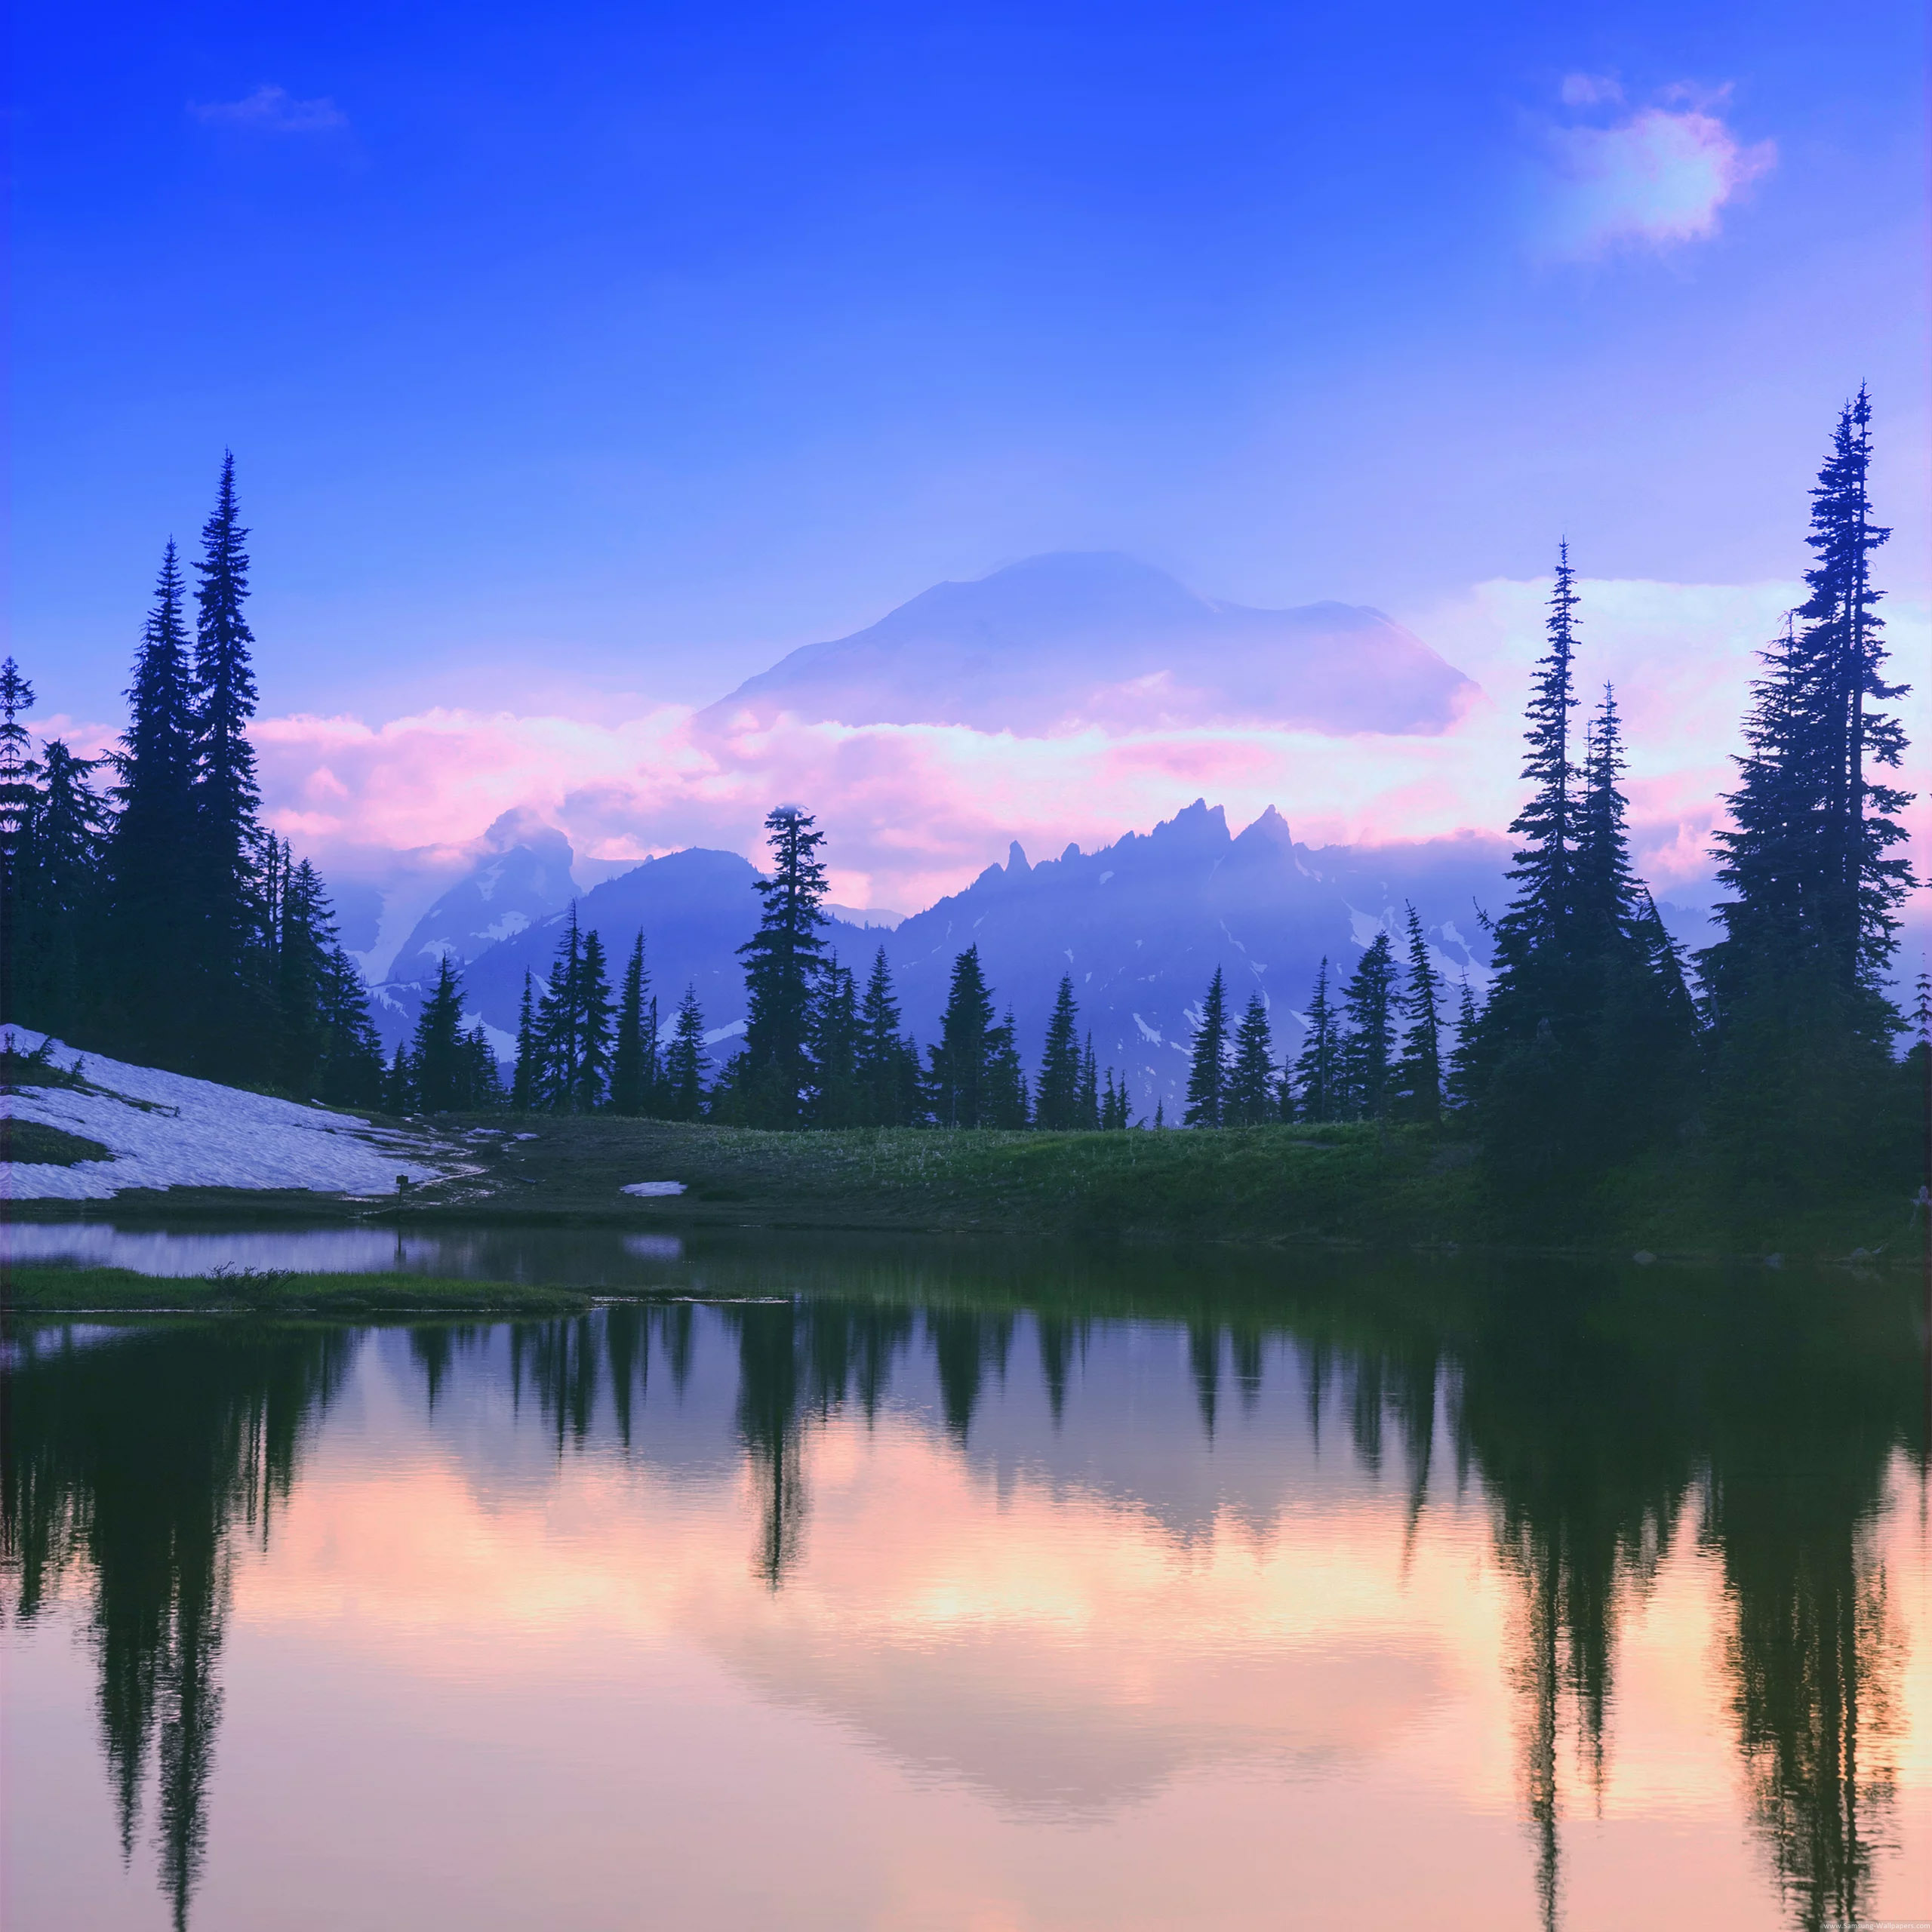 Cool Nature Wallpapers Pics For PC Desktop & Mobile Phones - Cool HD Wallpapers Backgrounds ...